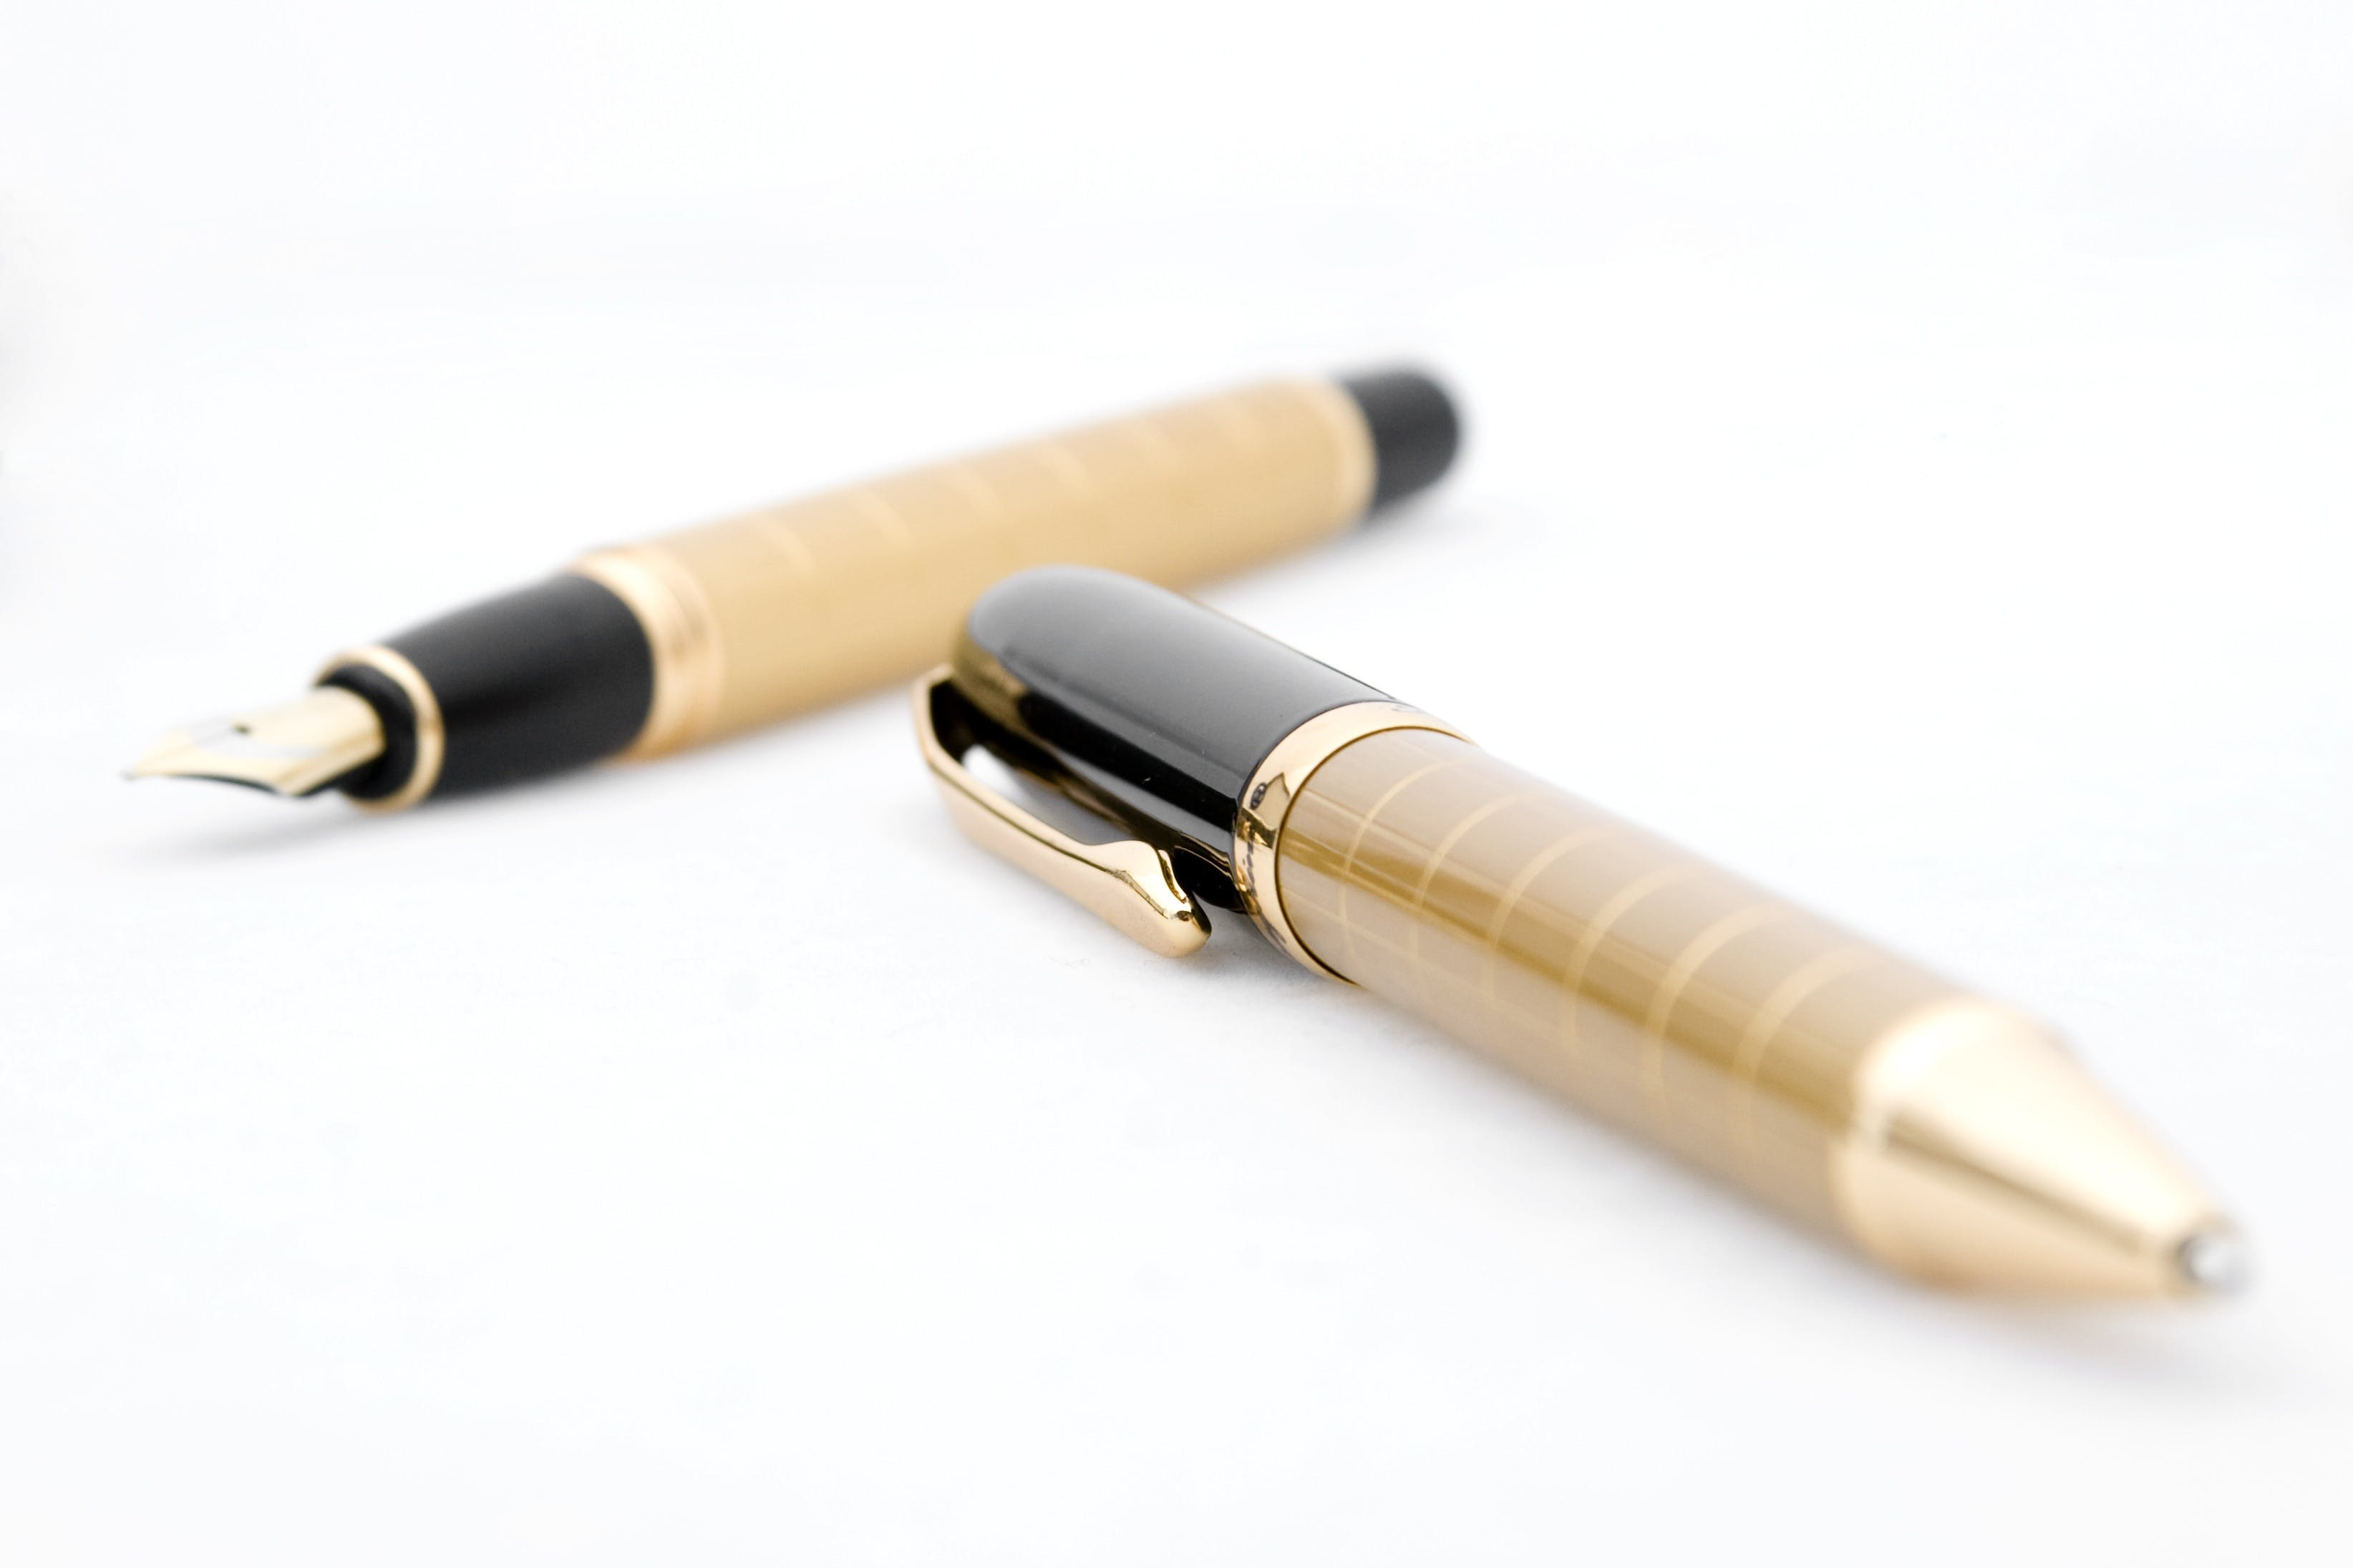 Two Brown-and-black Pen and Fountain Pen on White Background